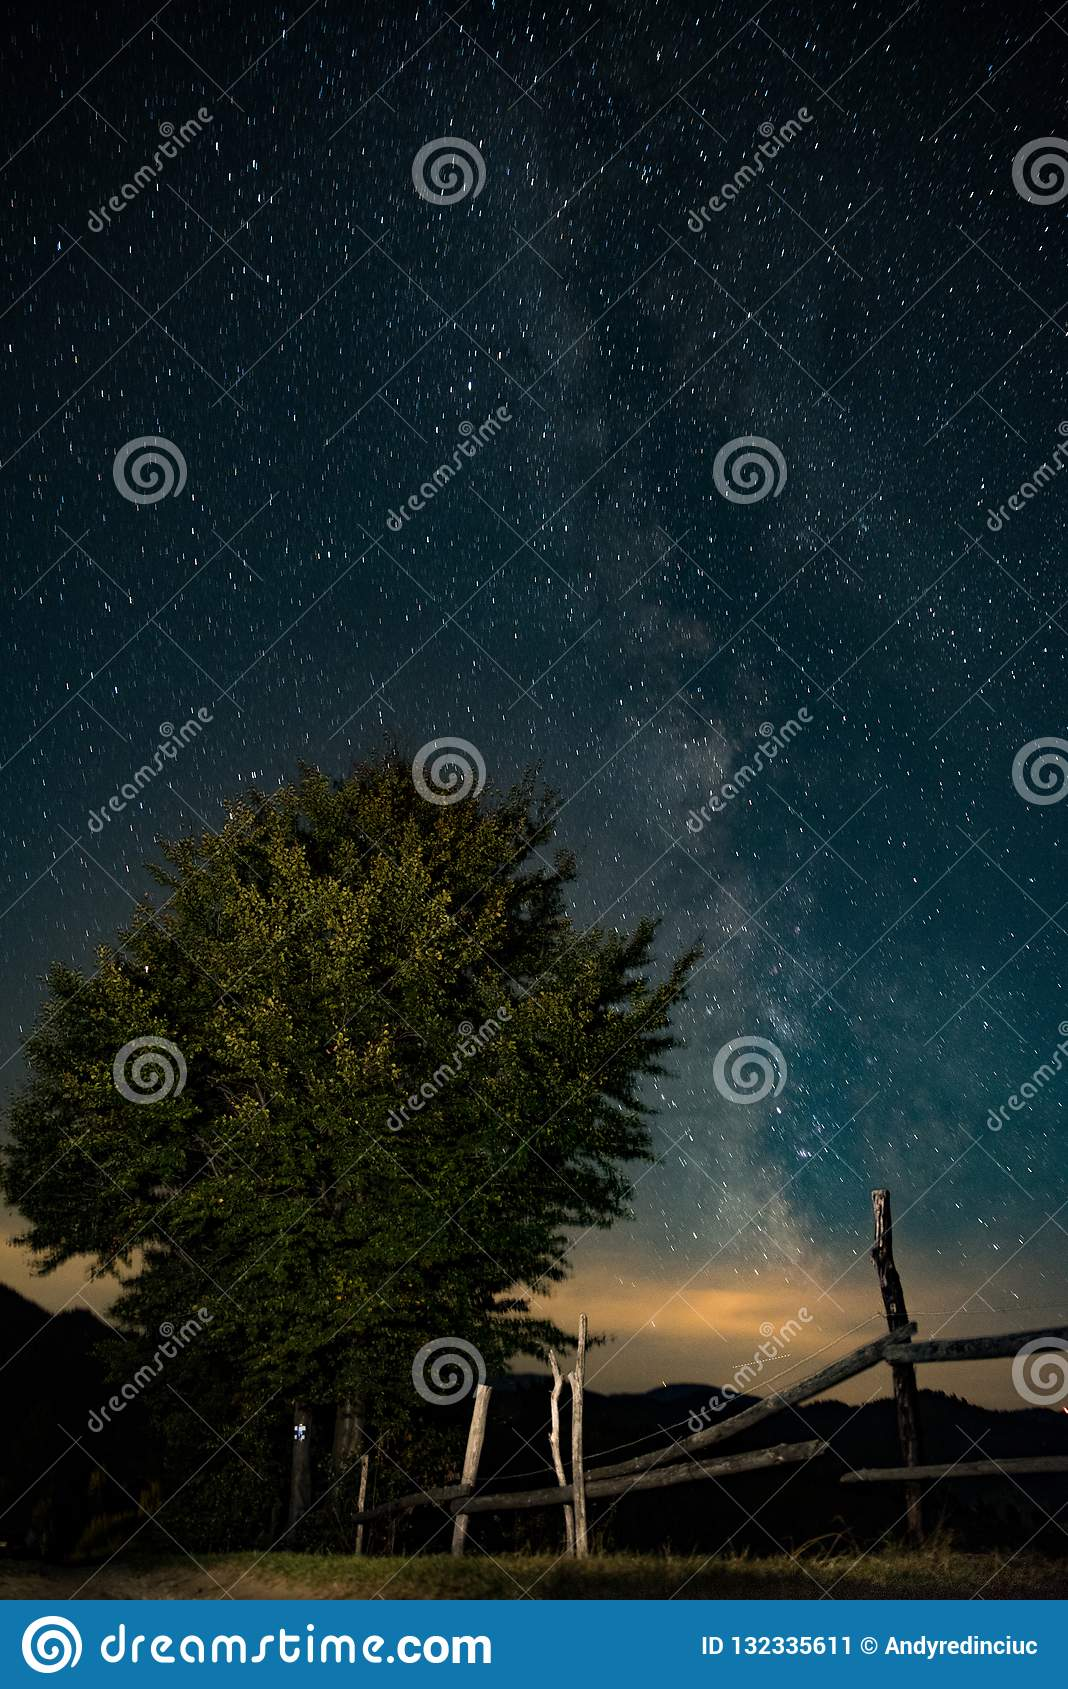 Astrophotography Sky Background Night Beautiful Stock Image